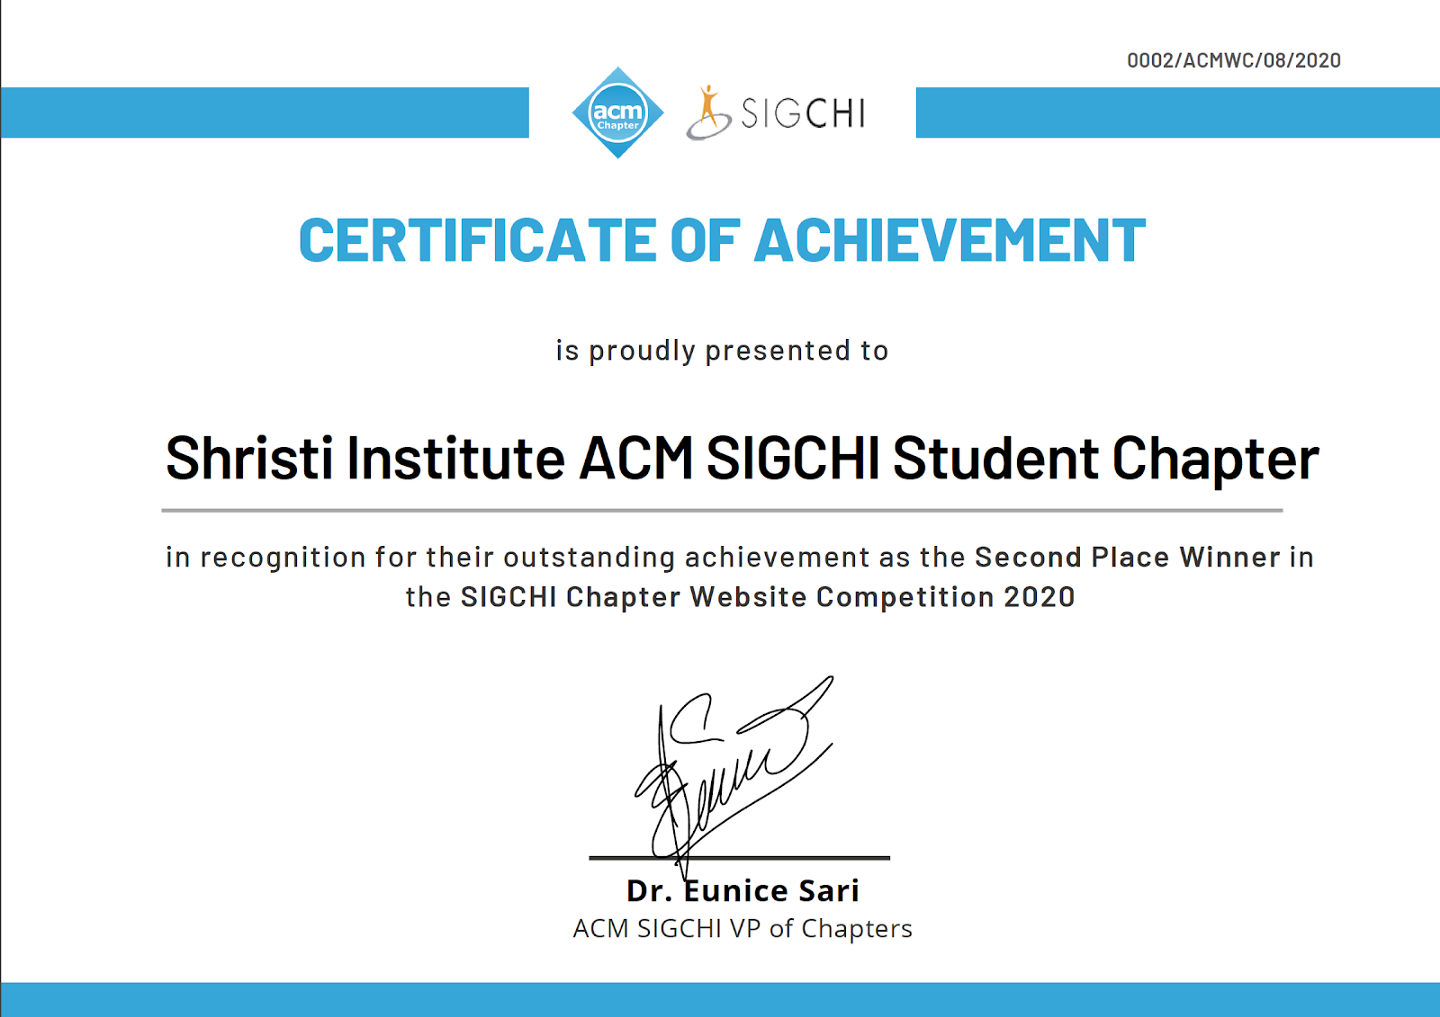 Second Place Winner Certificate of Achievement for Shristi Institute ACM SIGCHI Student Chapter